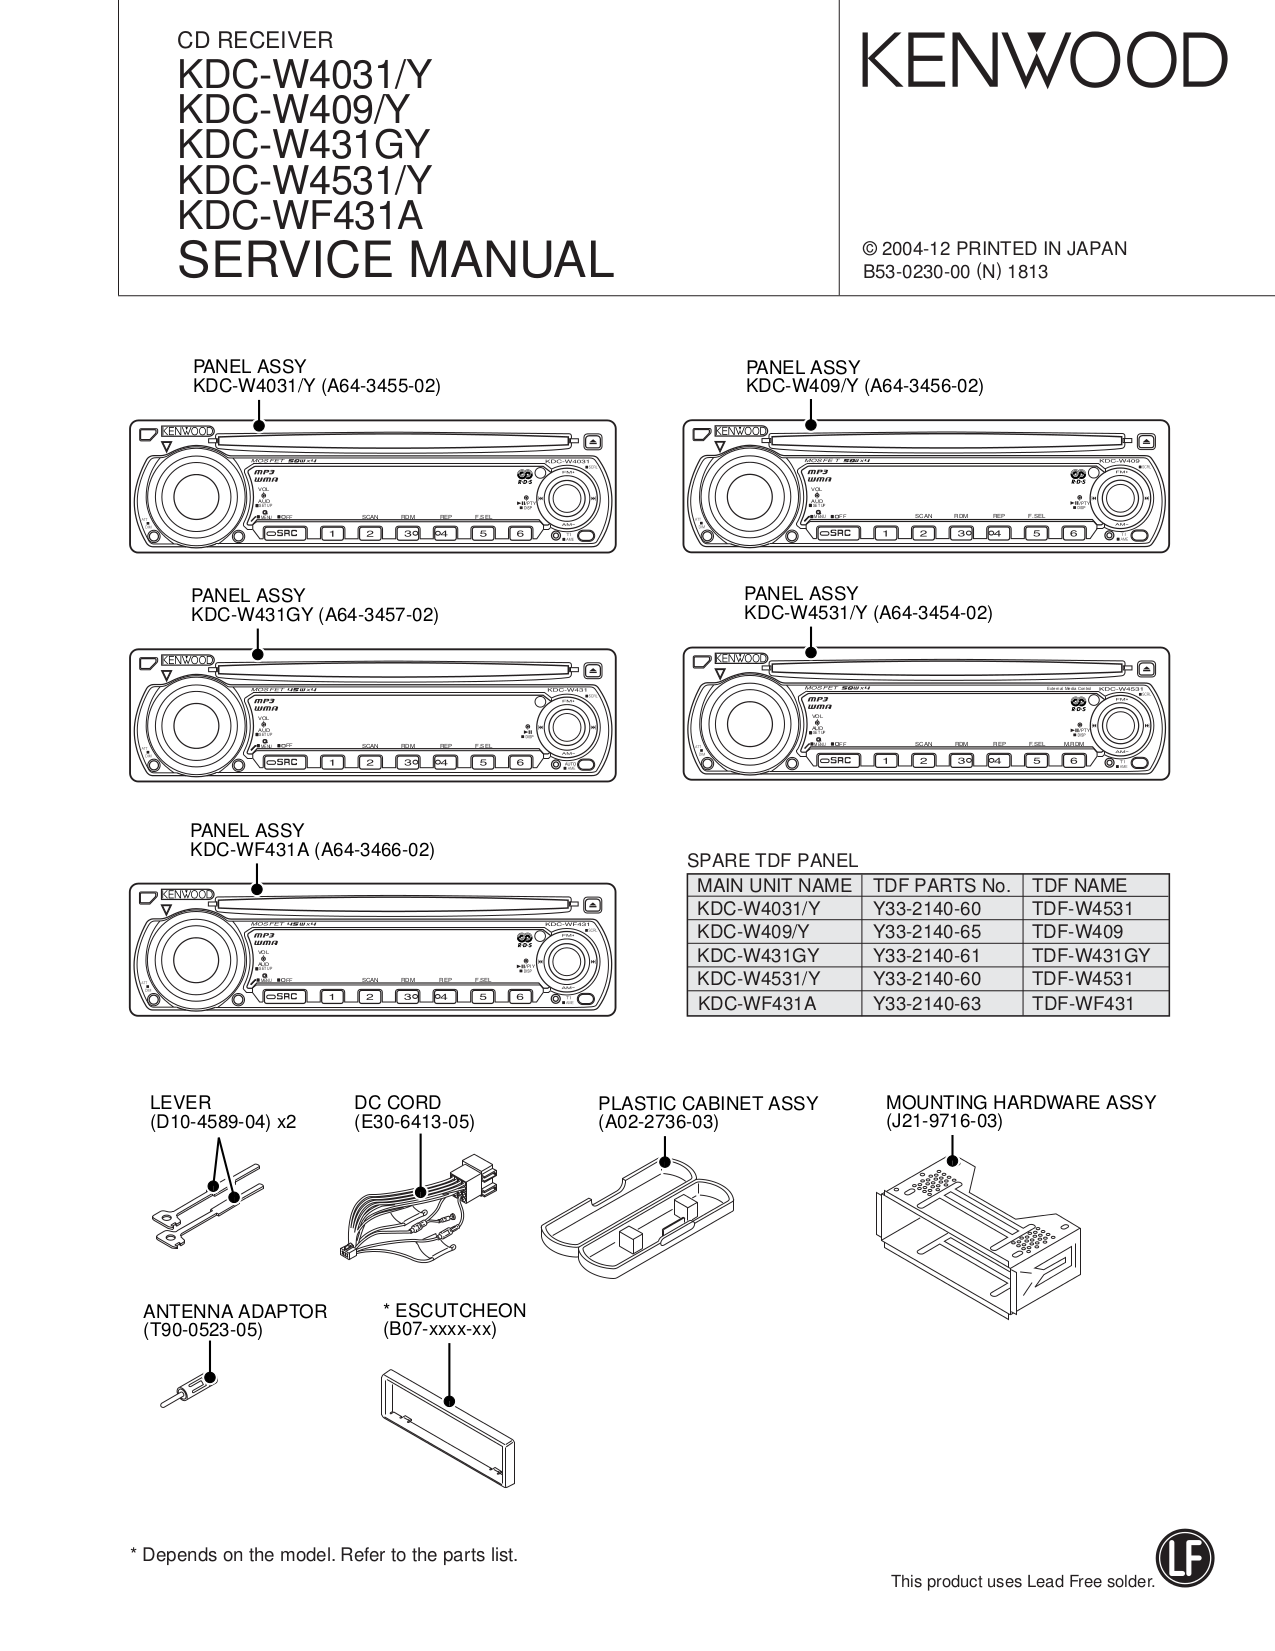 Kenwood Kdc 222 Wiring Diagram 138 Download Free Pdf For Car Receiver Manual Rh Umlib Com